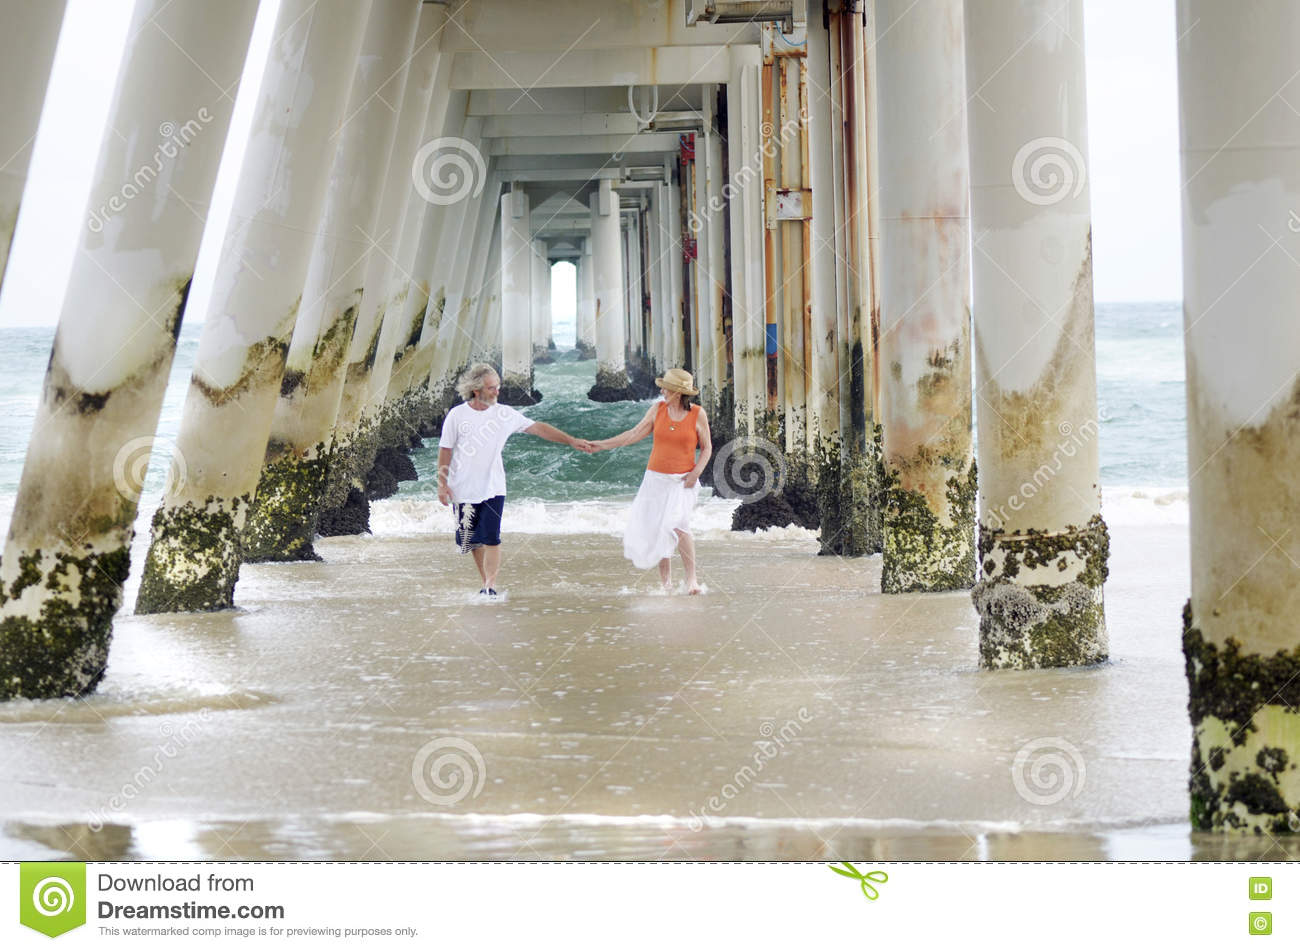 Romantic older mature man & woman couple carefree on beach summer time